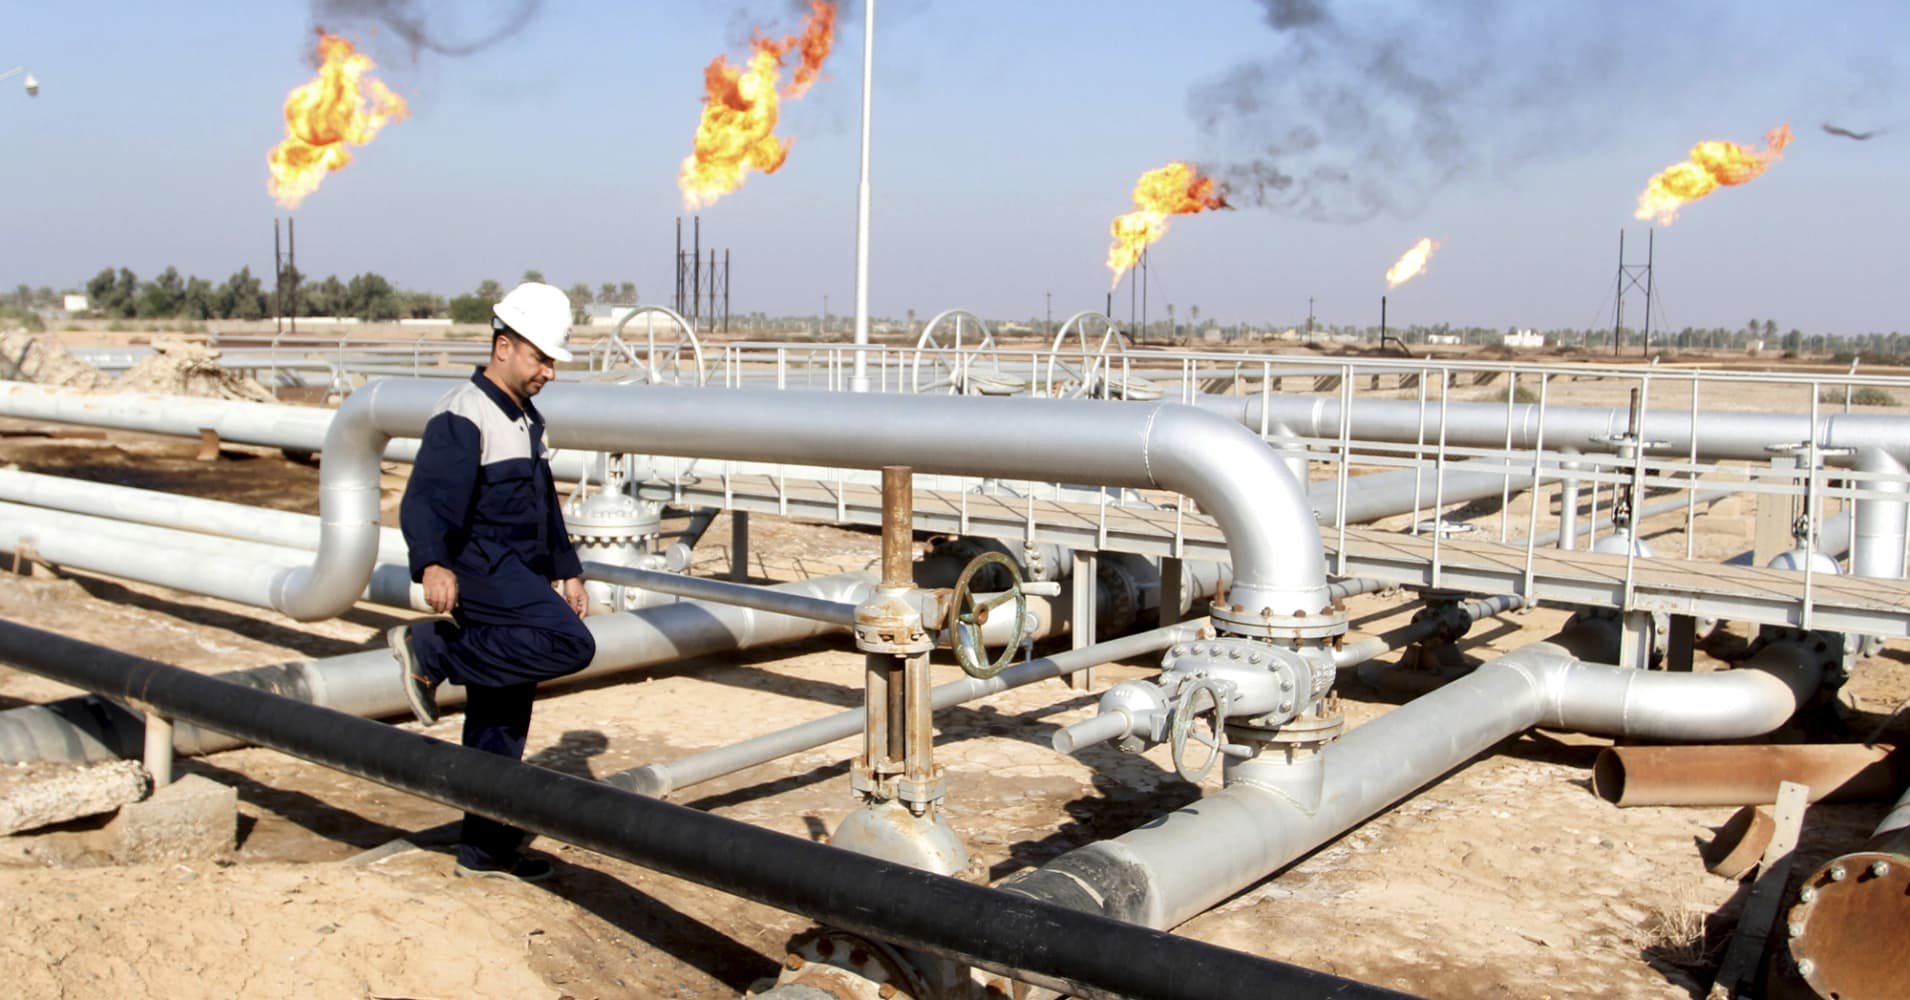 OPEC: Speculators help oil up but oversupply persists